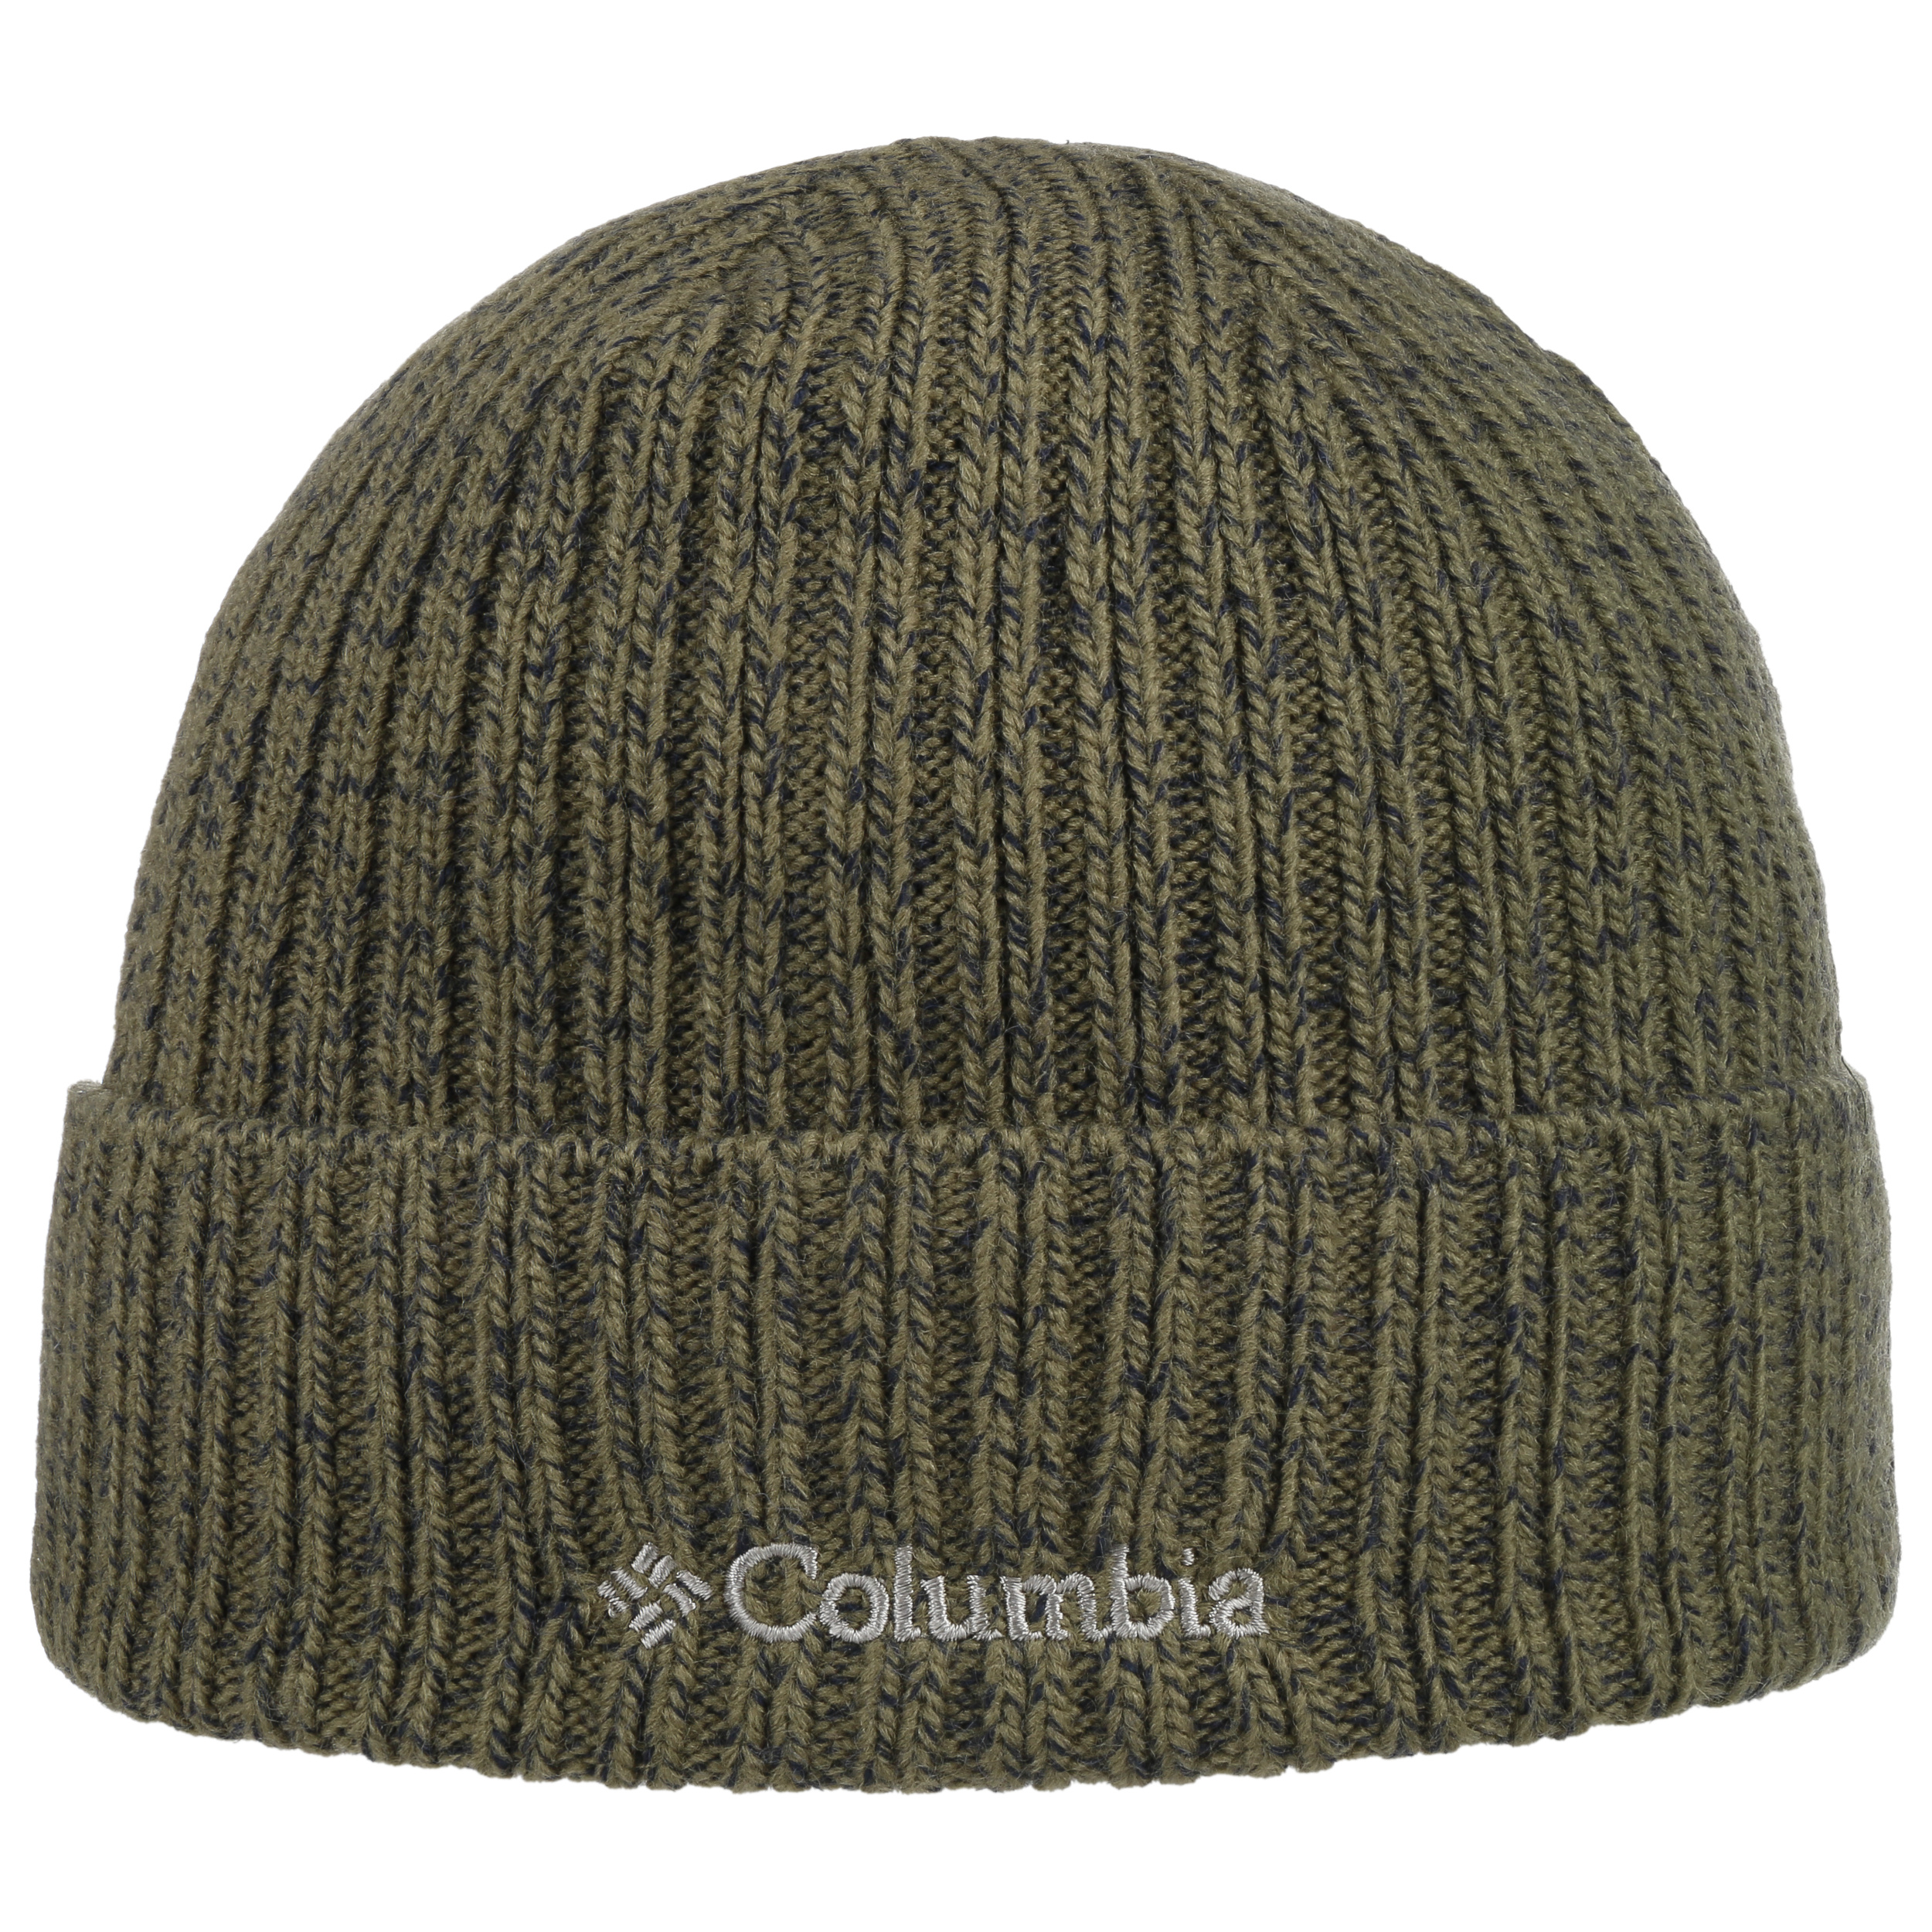 Watch Cap II Beanie. by Columbia 5d2cd45a5b7